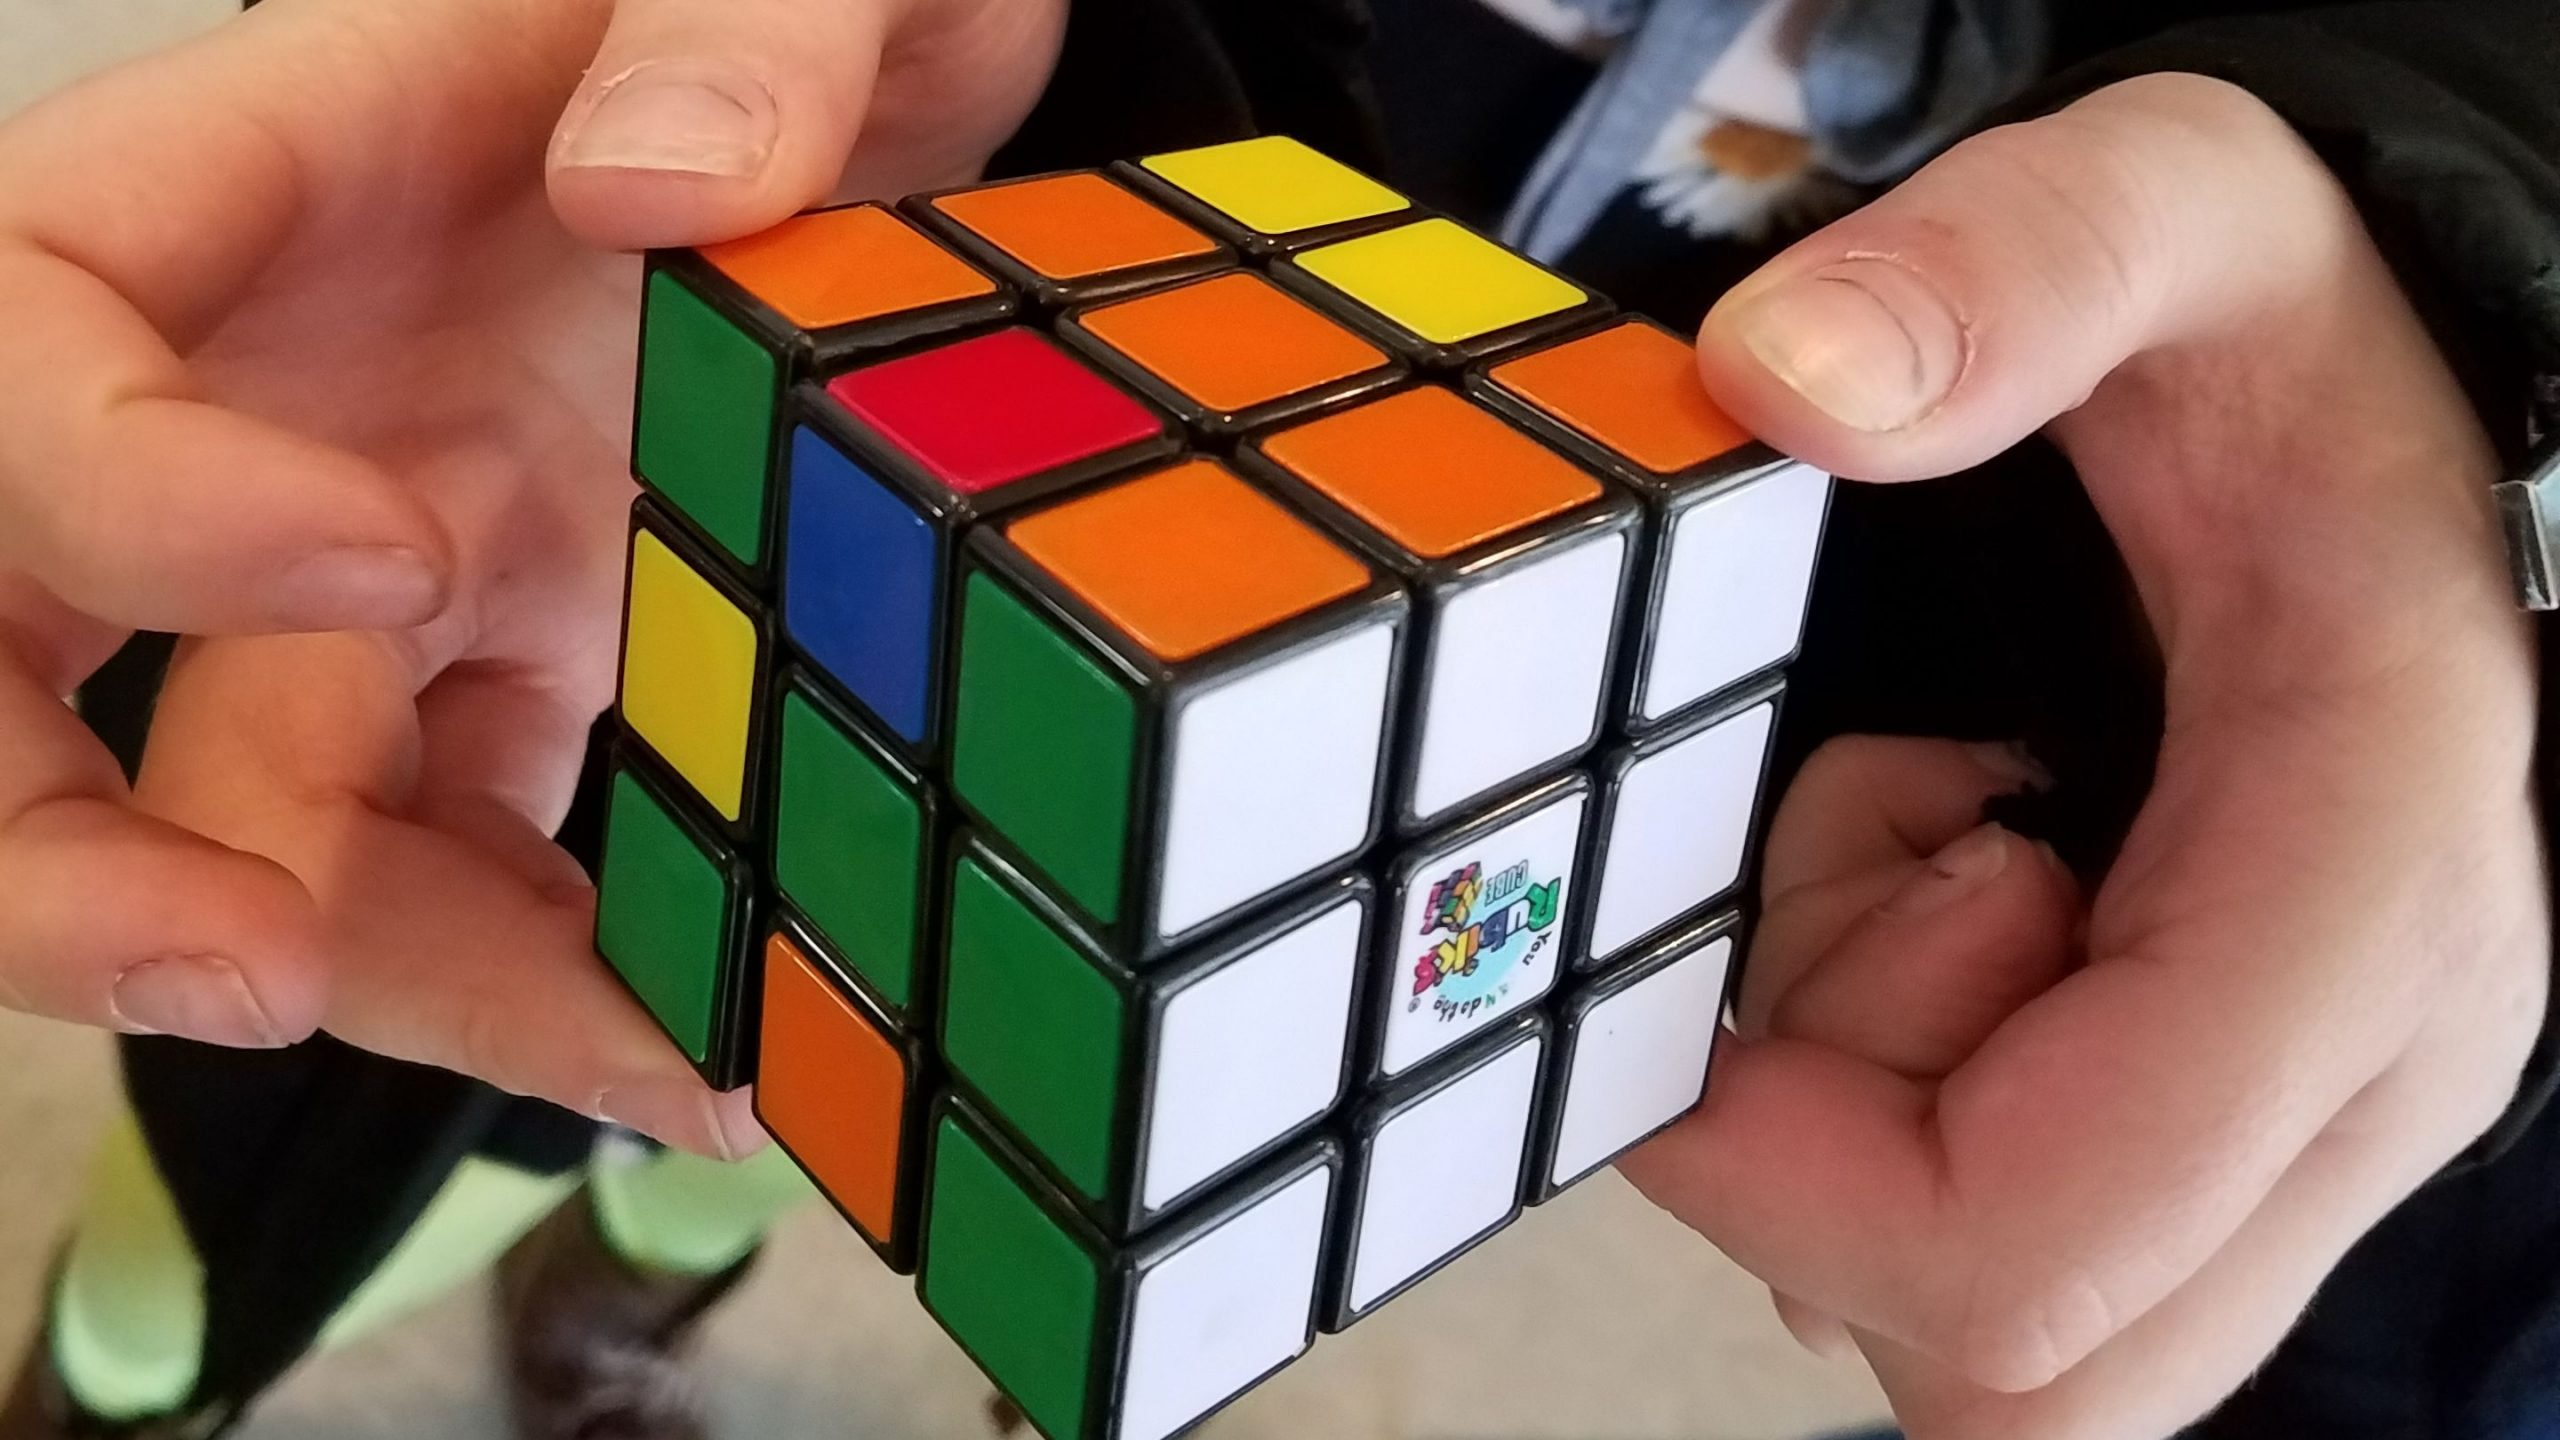 7 ideas to learn more about leadership by playing with Rubik's Cube